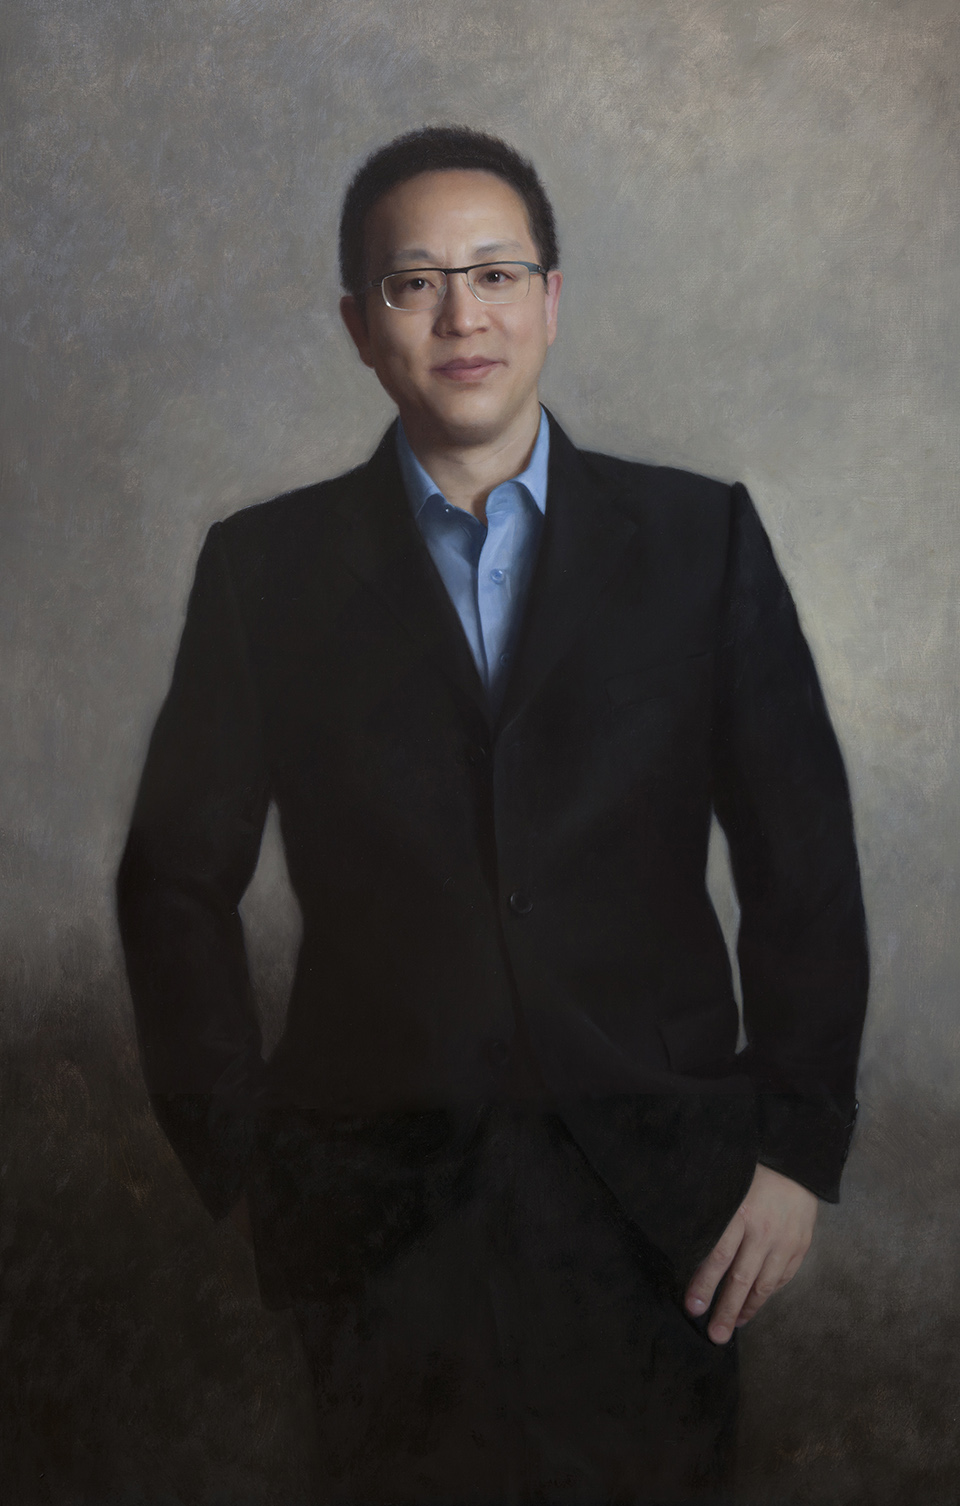 Mr Wan portrait web.jpg